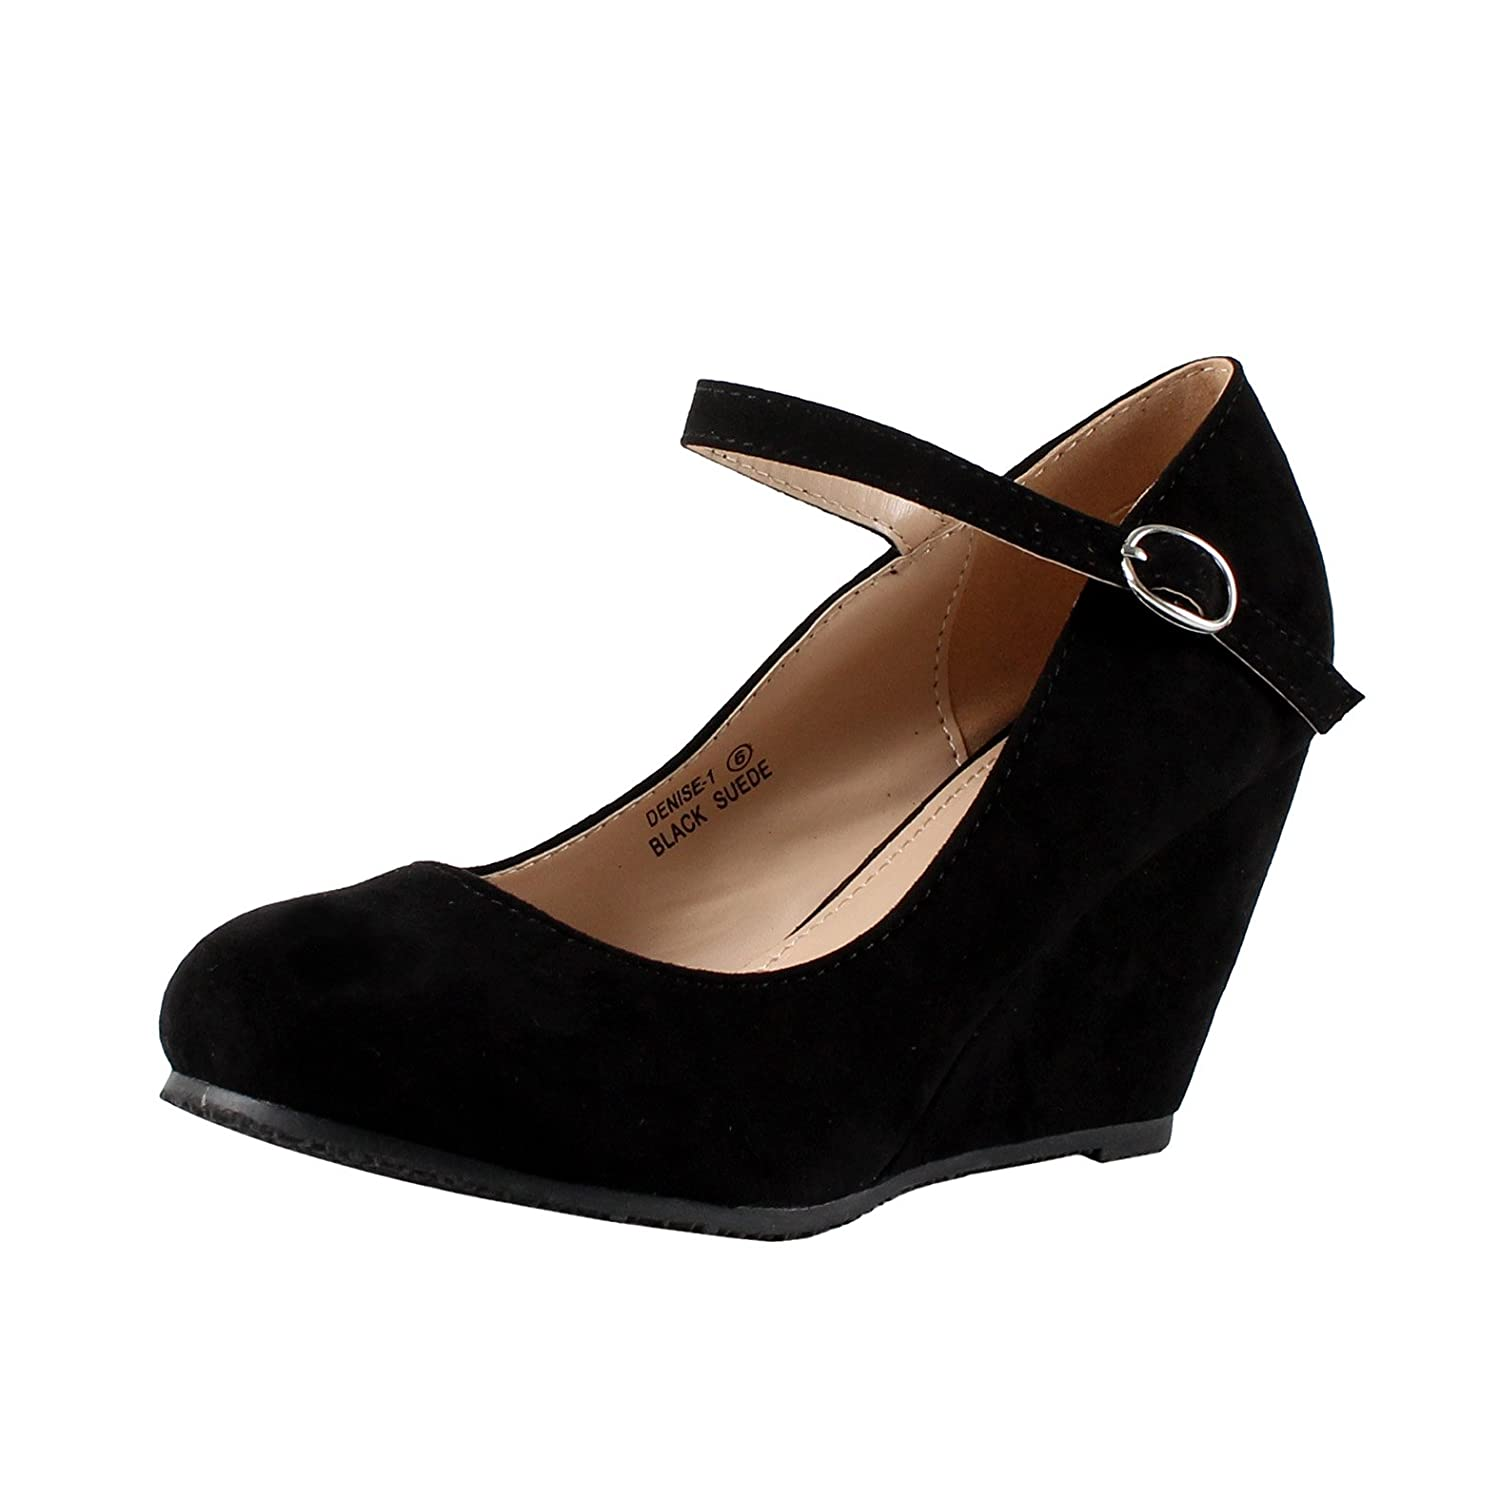 dcb0169e37 Amazon.com | Bella Marie Denise-1 Women's round toe wedge heel mary jane  squeaky strap suede shoes | Pumps